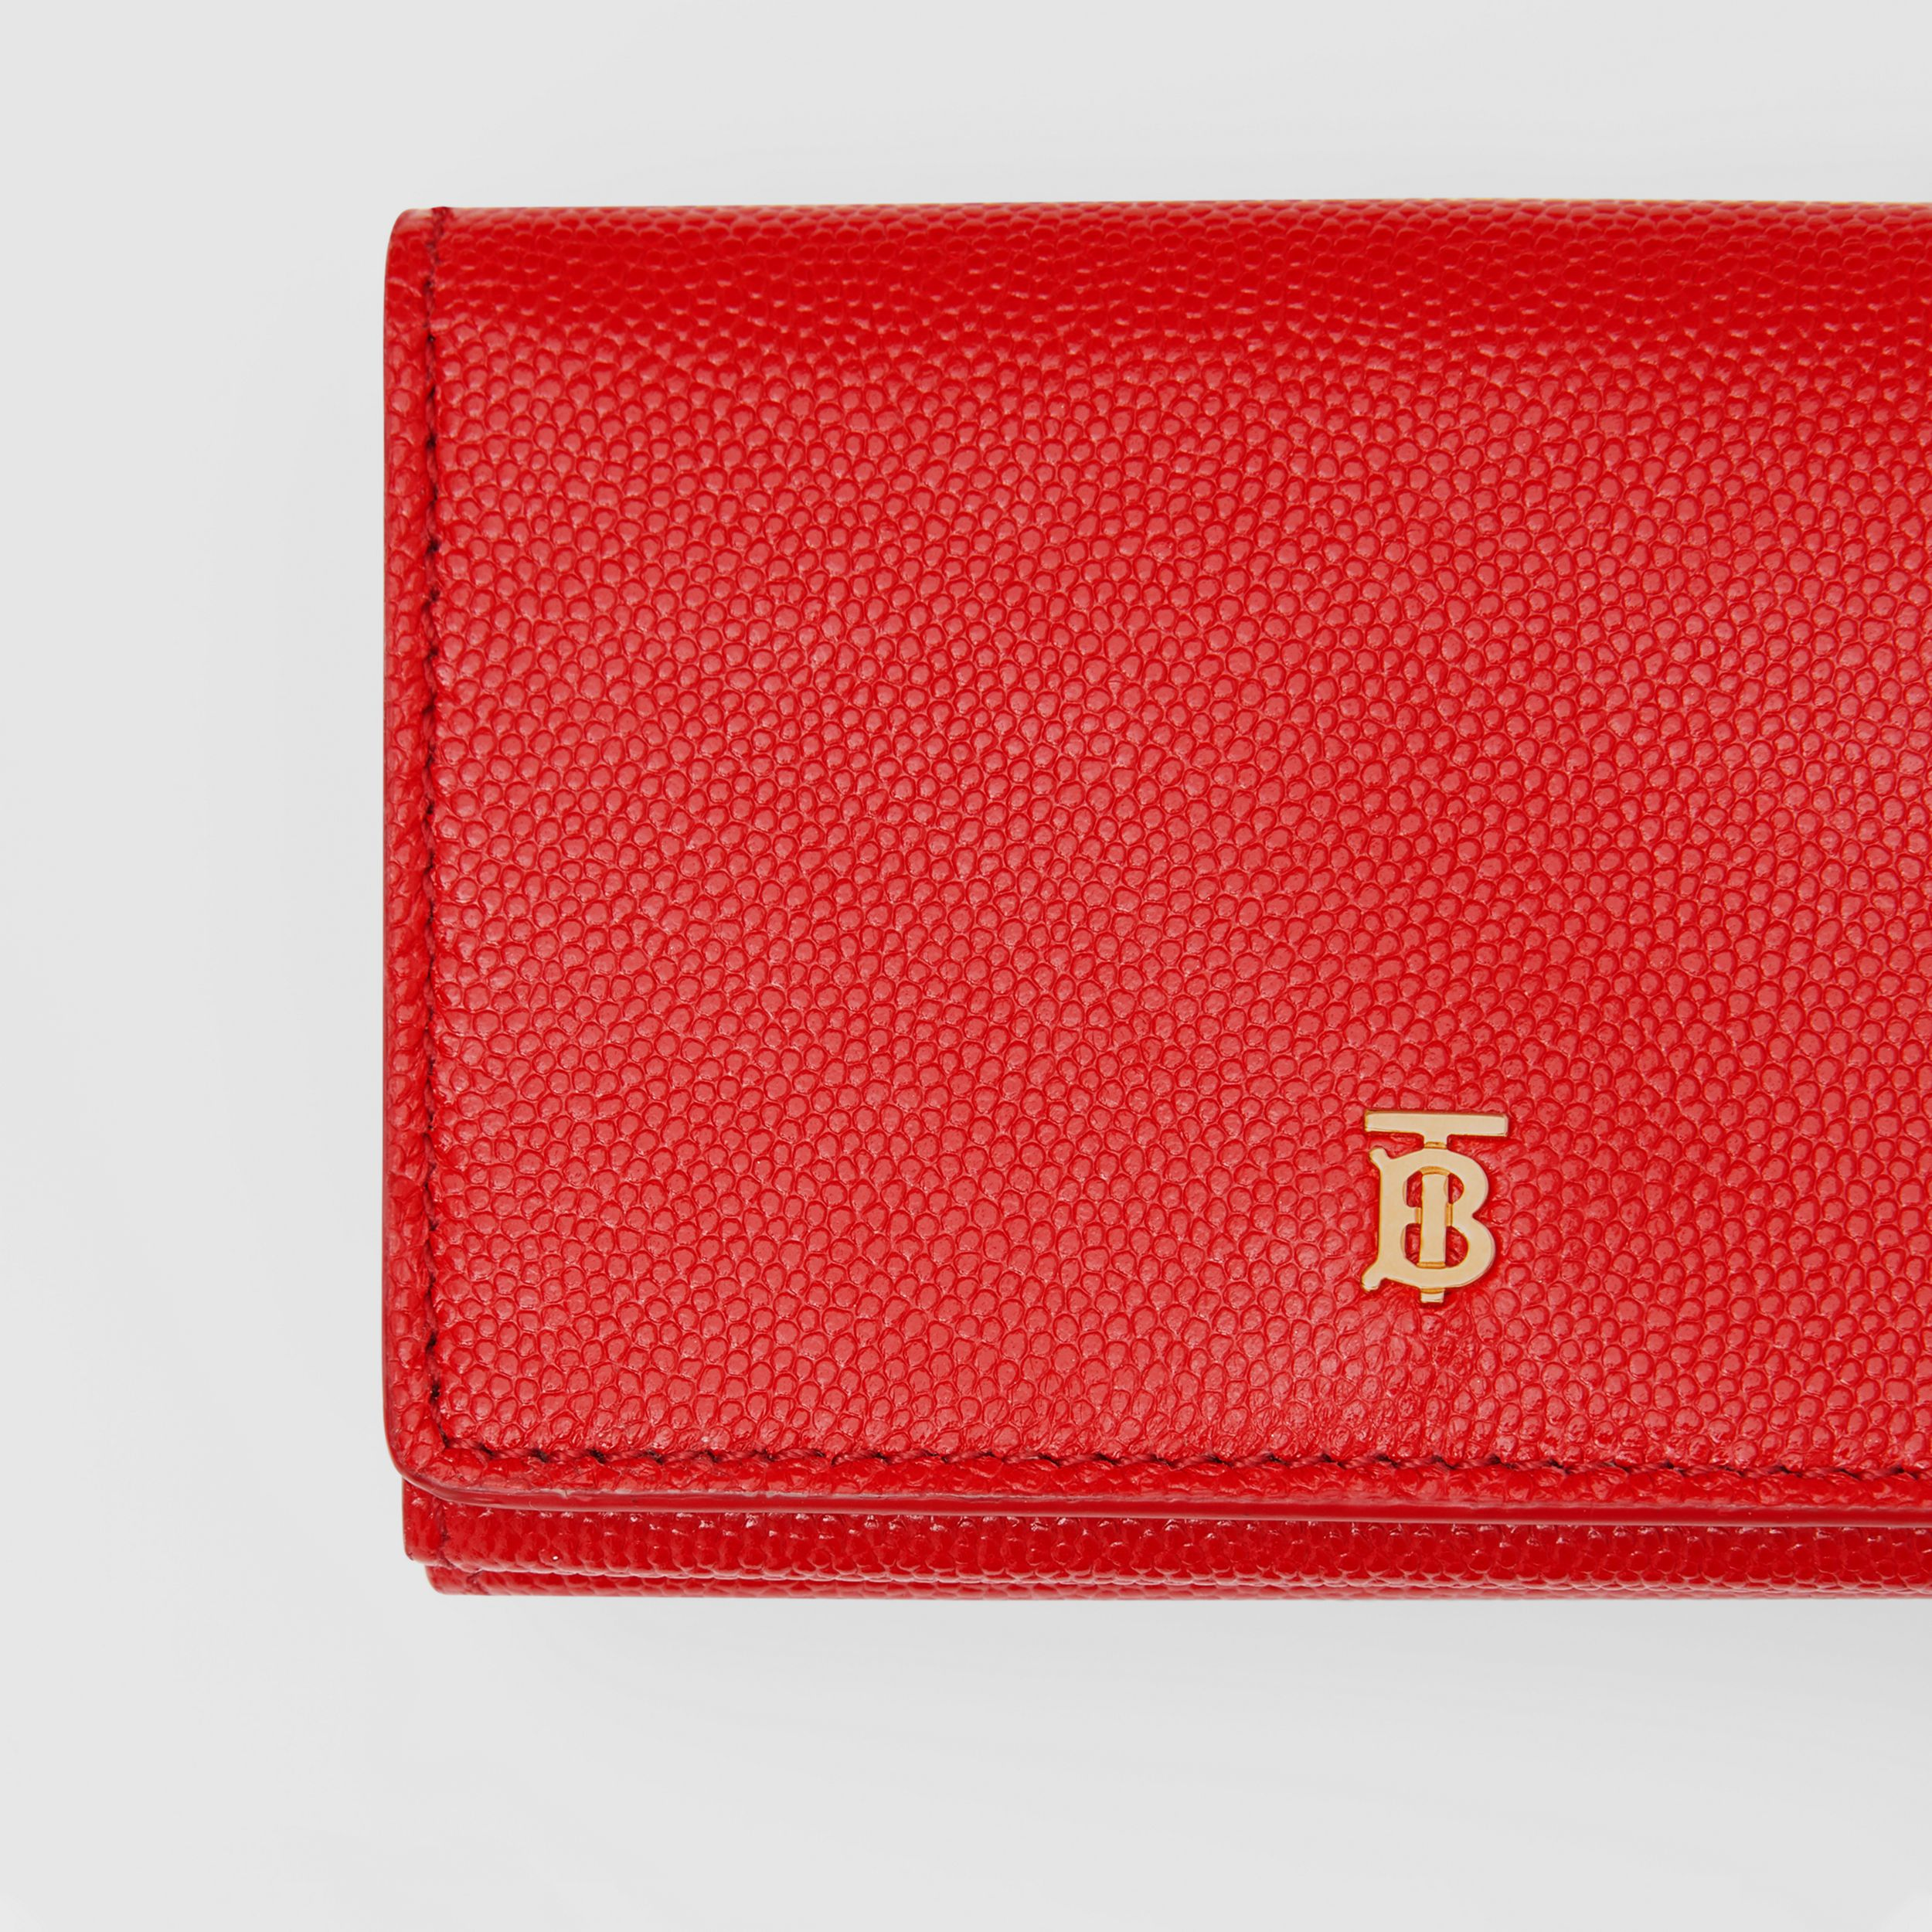 Small Grainy Leather Folding Wallet in Bright Red - Women | Burberry Canada - 2